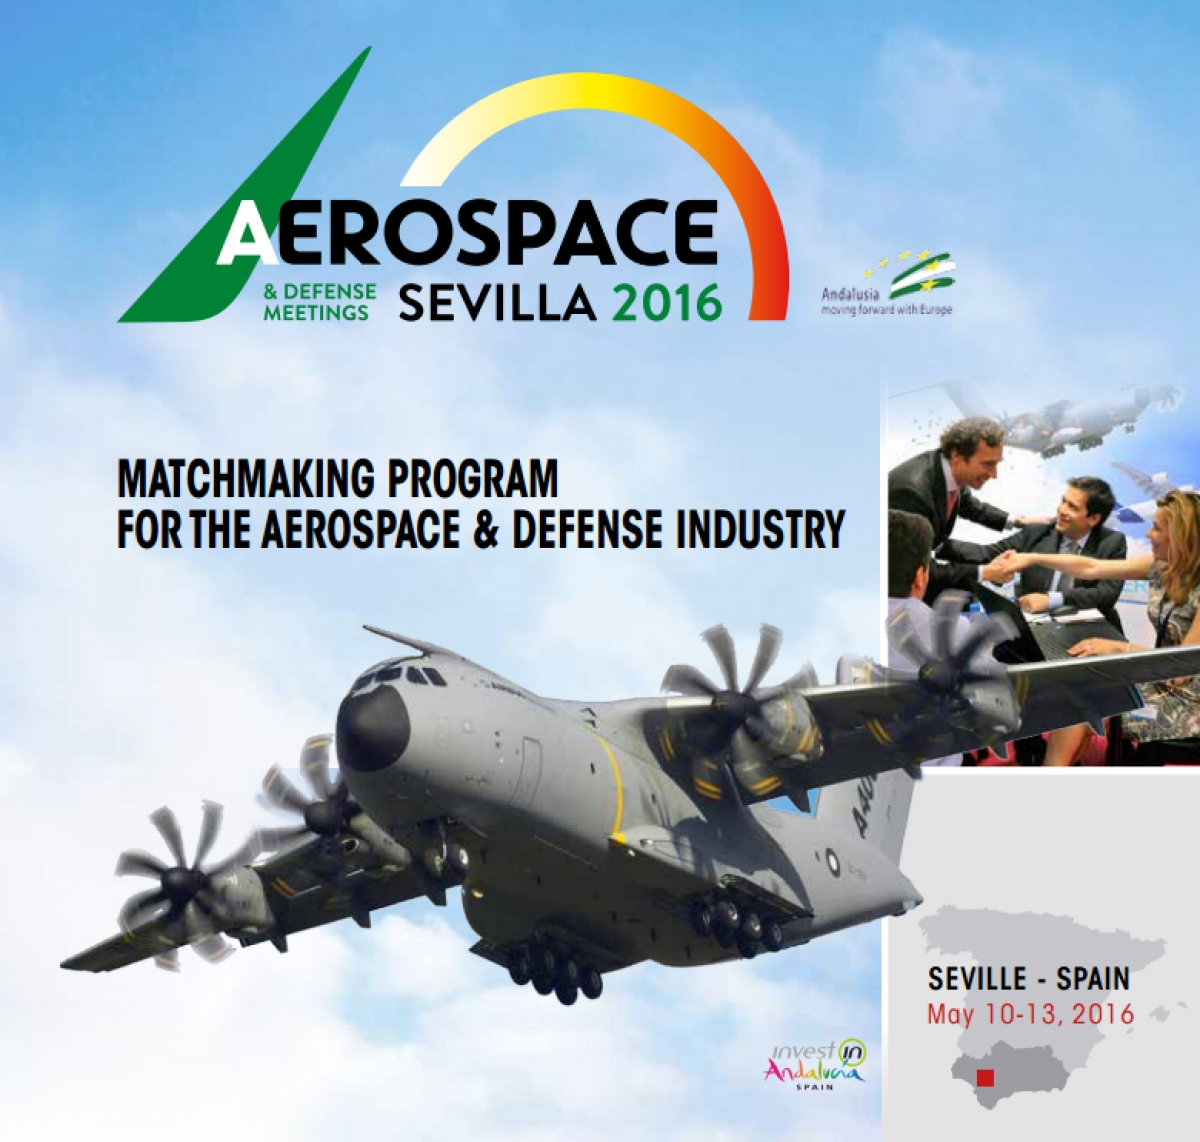 Carbures en el III Aerospace and Defense Meetings-ADM Sevilla 2016